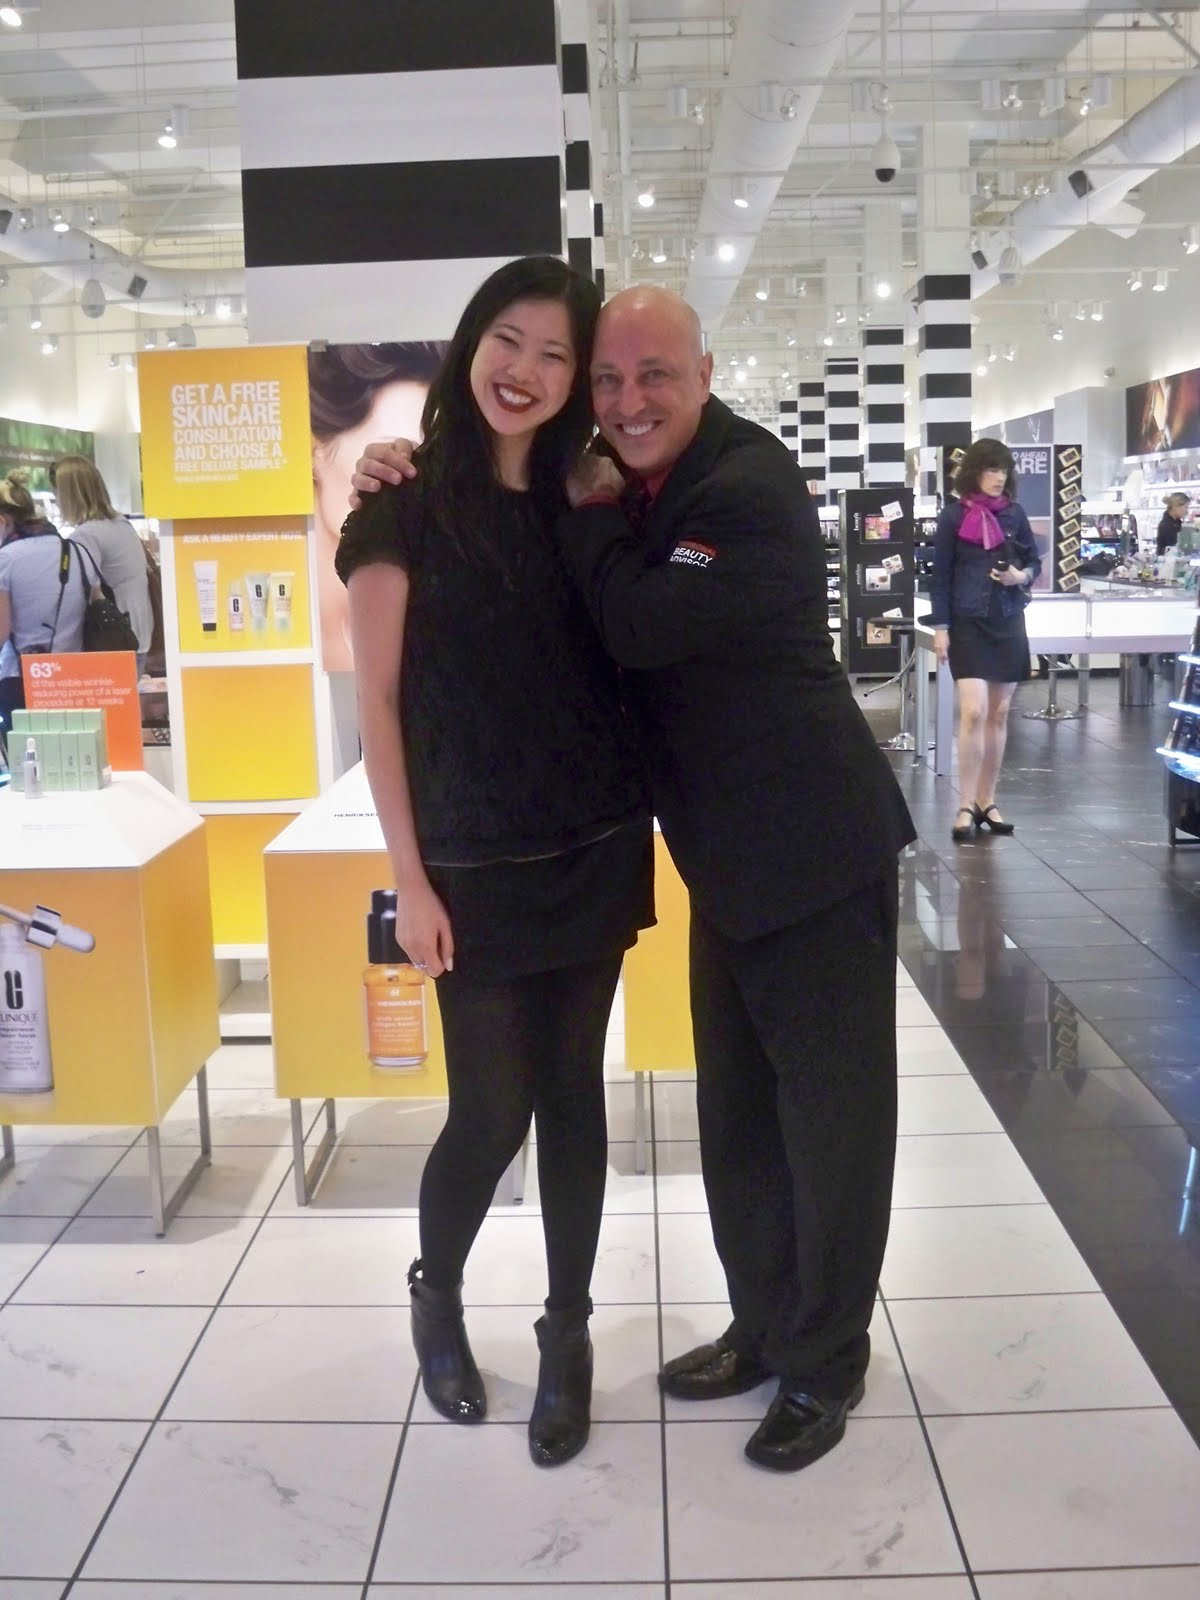 sephora s personal beauty advisor is all about you particle of my session sephora s personal beauty advisor has been the best date i ve had in awhile my advisor michael is a very attentive conversationalist